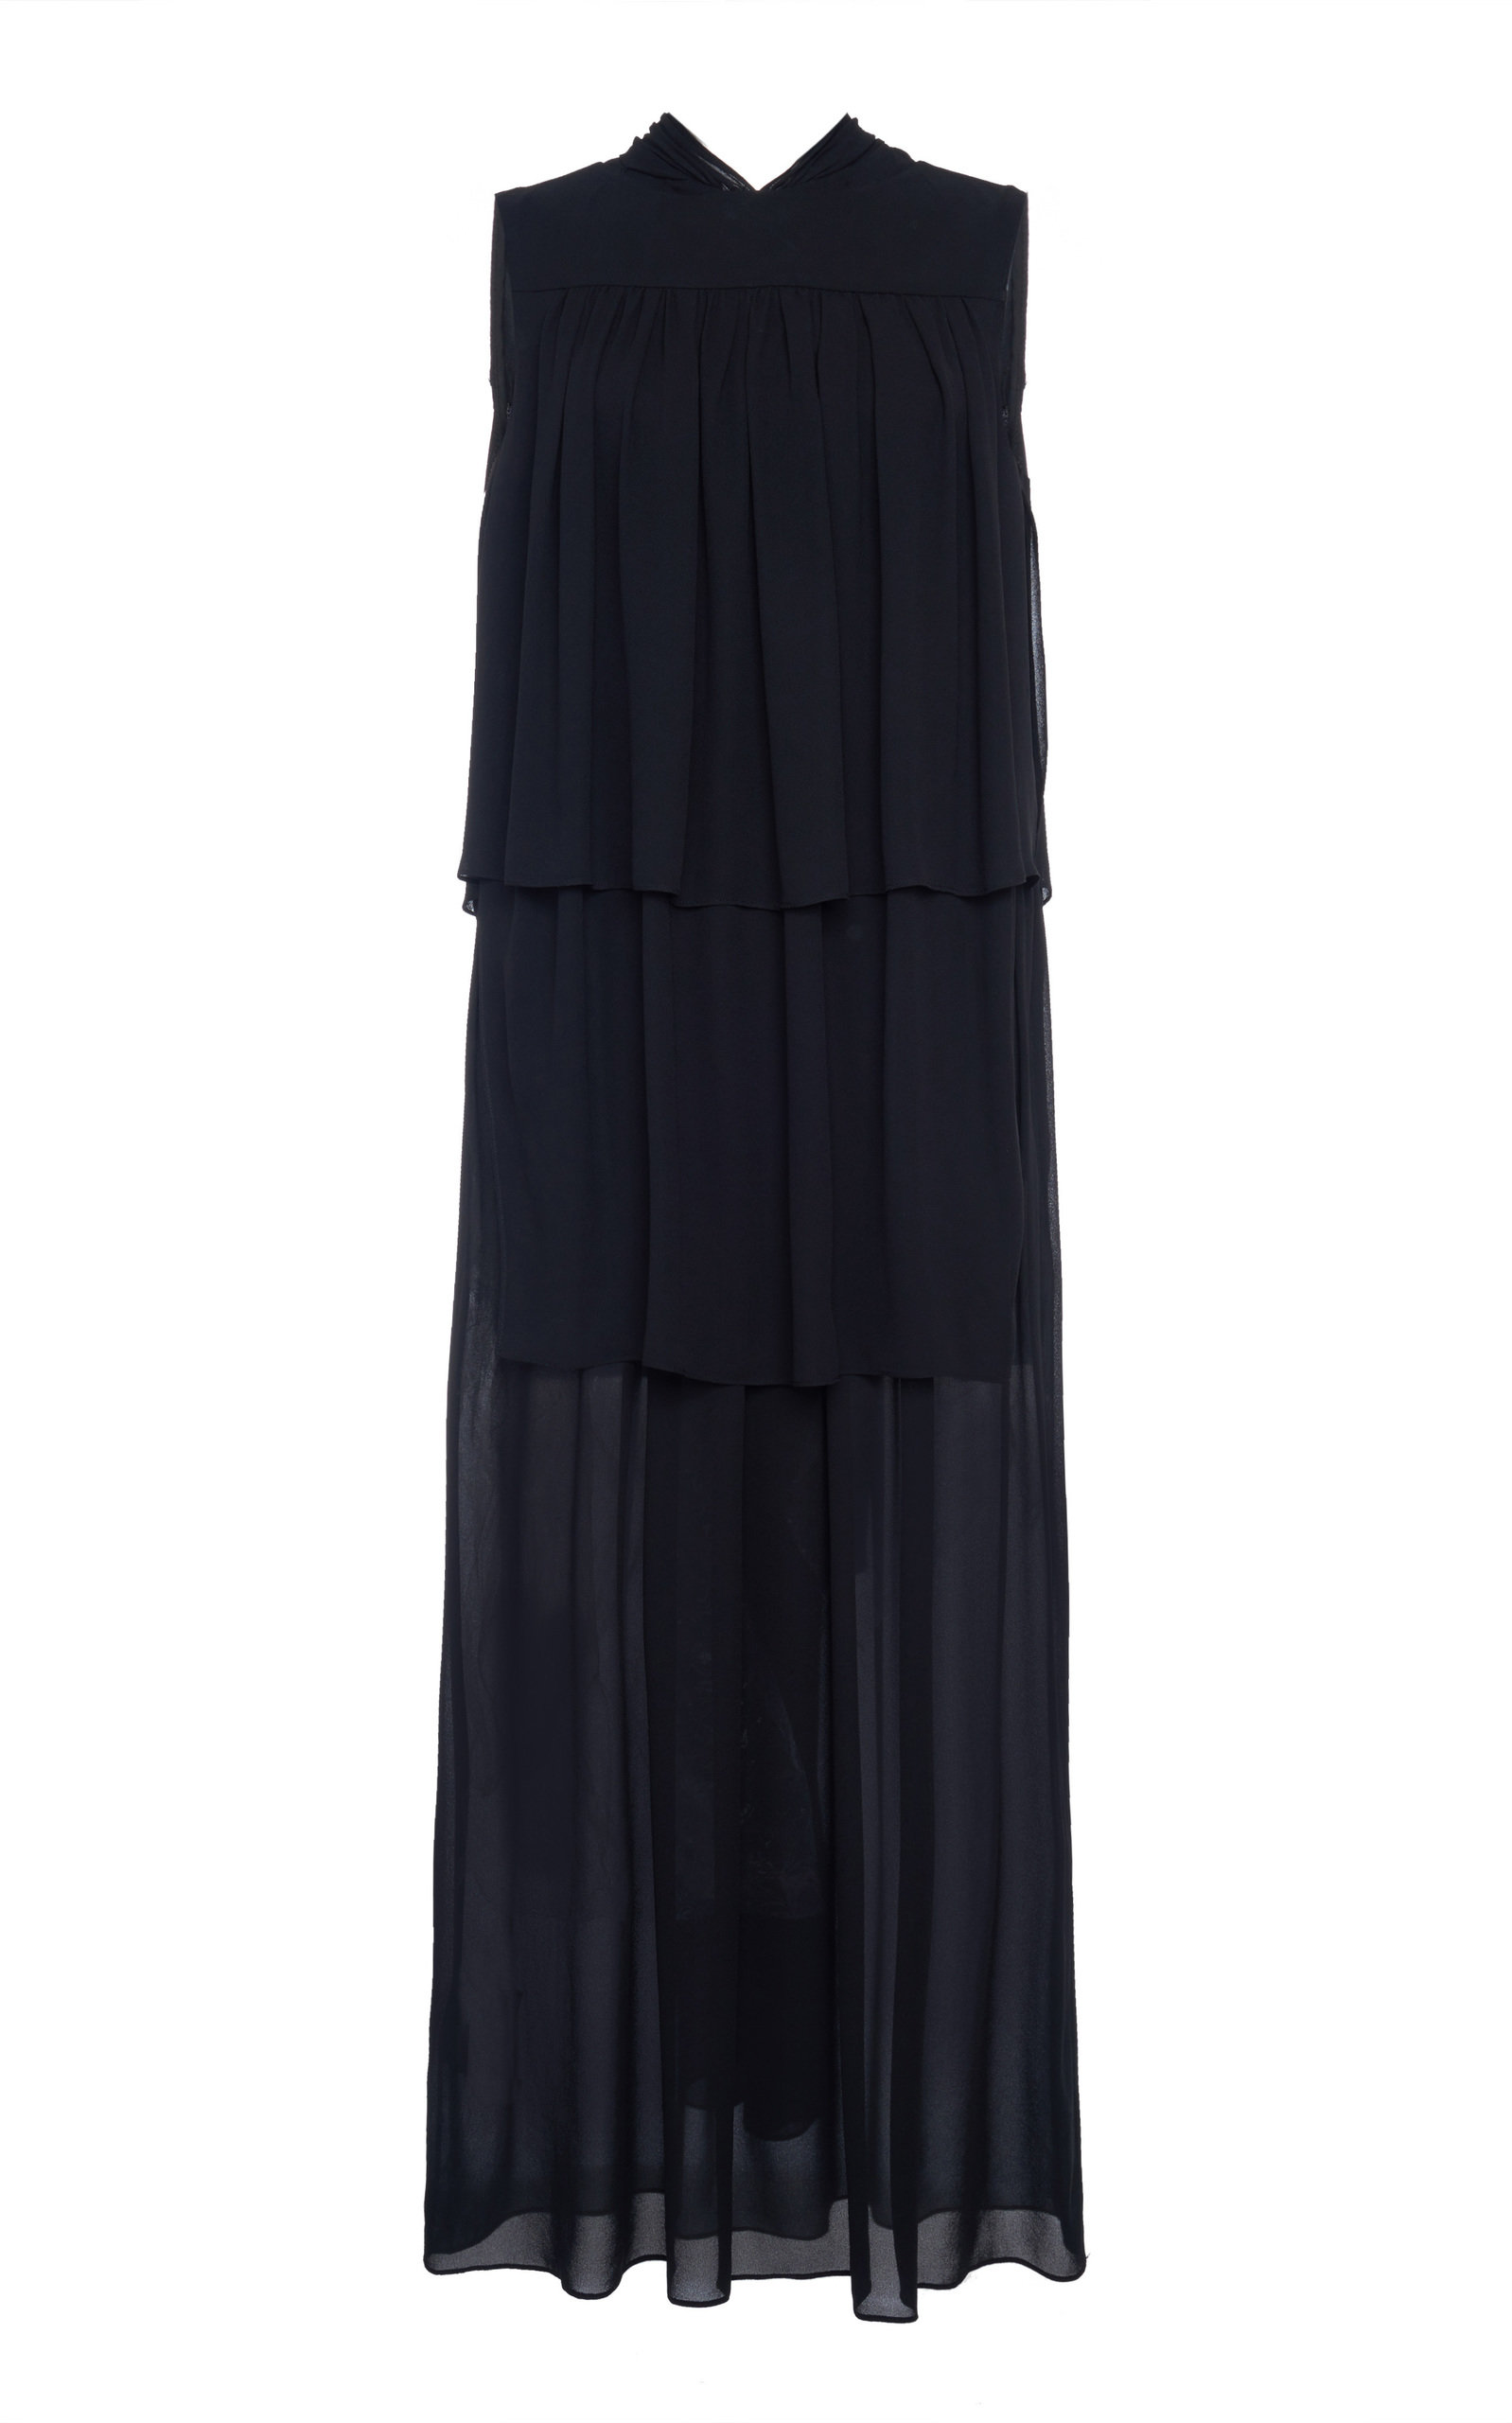 Buy Prada Tiered Crepe Midi Dress online, shop Prada at the best price